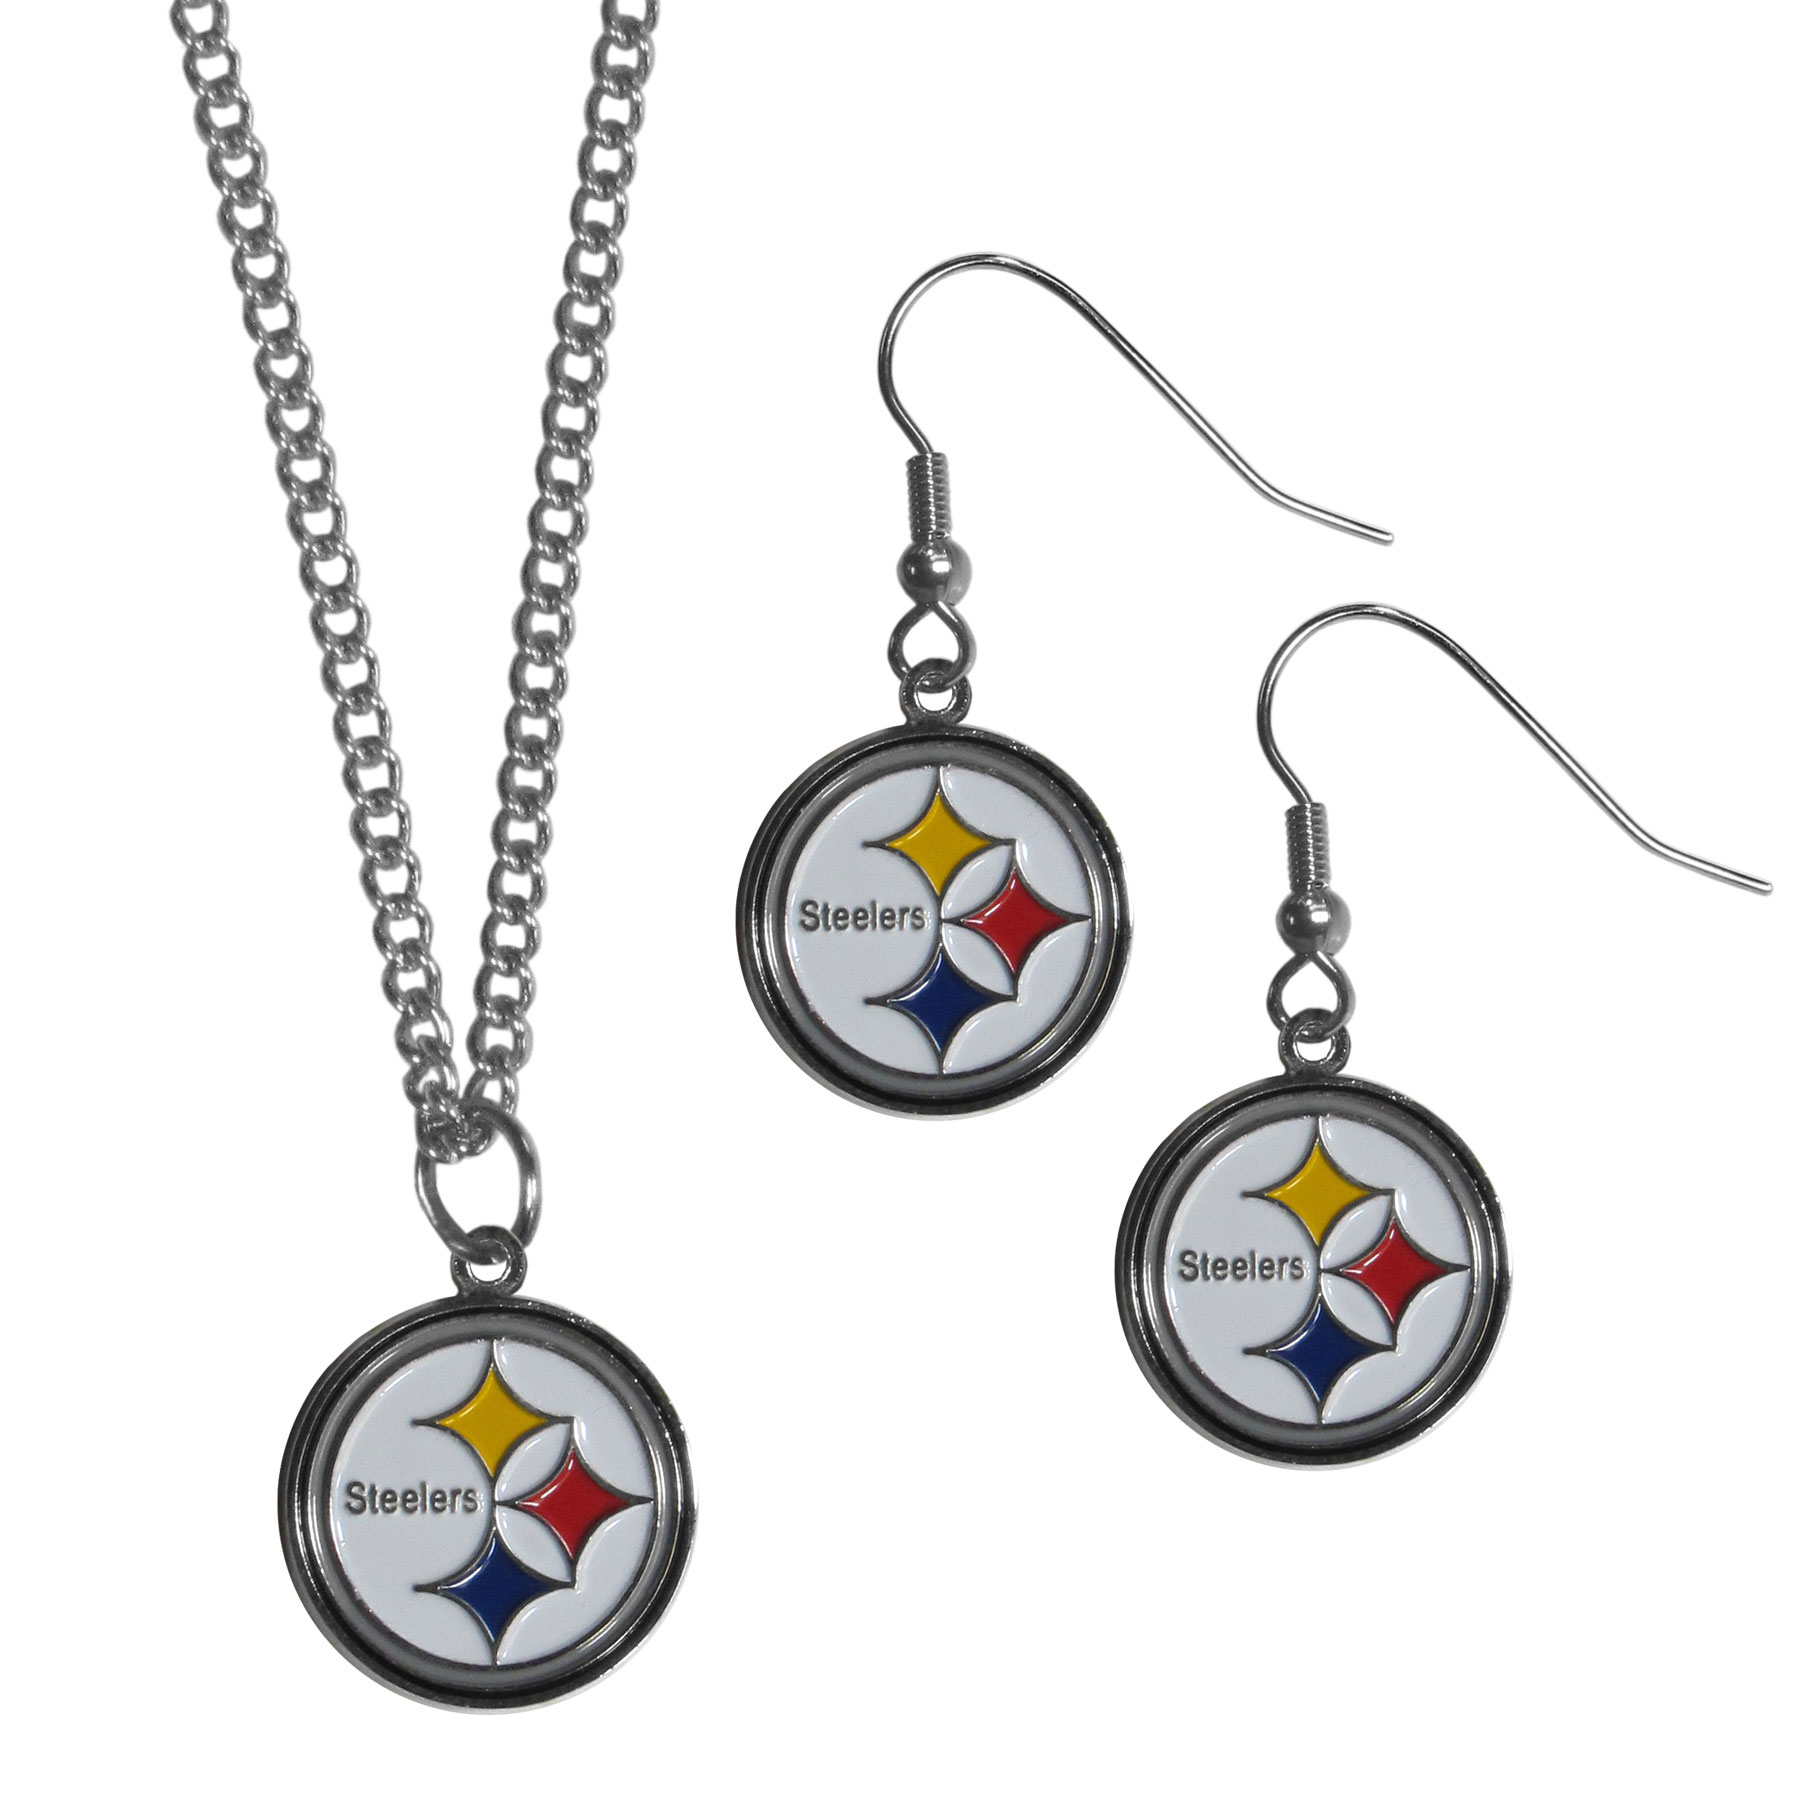 Pittsburgh Steelers Dangle Earrings and Chain Necklace Set - This classic jewelry set contains are most popular Pittsburgh Steelers dangle earrings and 22 inch chain necklace. The trendy, dangle earrings are lightweight and feature a fully cast metal team charm with enameled team colors. The matching necklace completes this fashion forward combo and is a spirited set that is perfect for game day but nice enough for everyday.